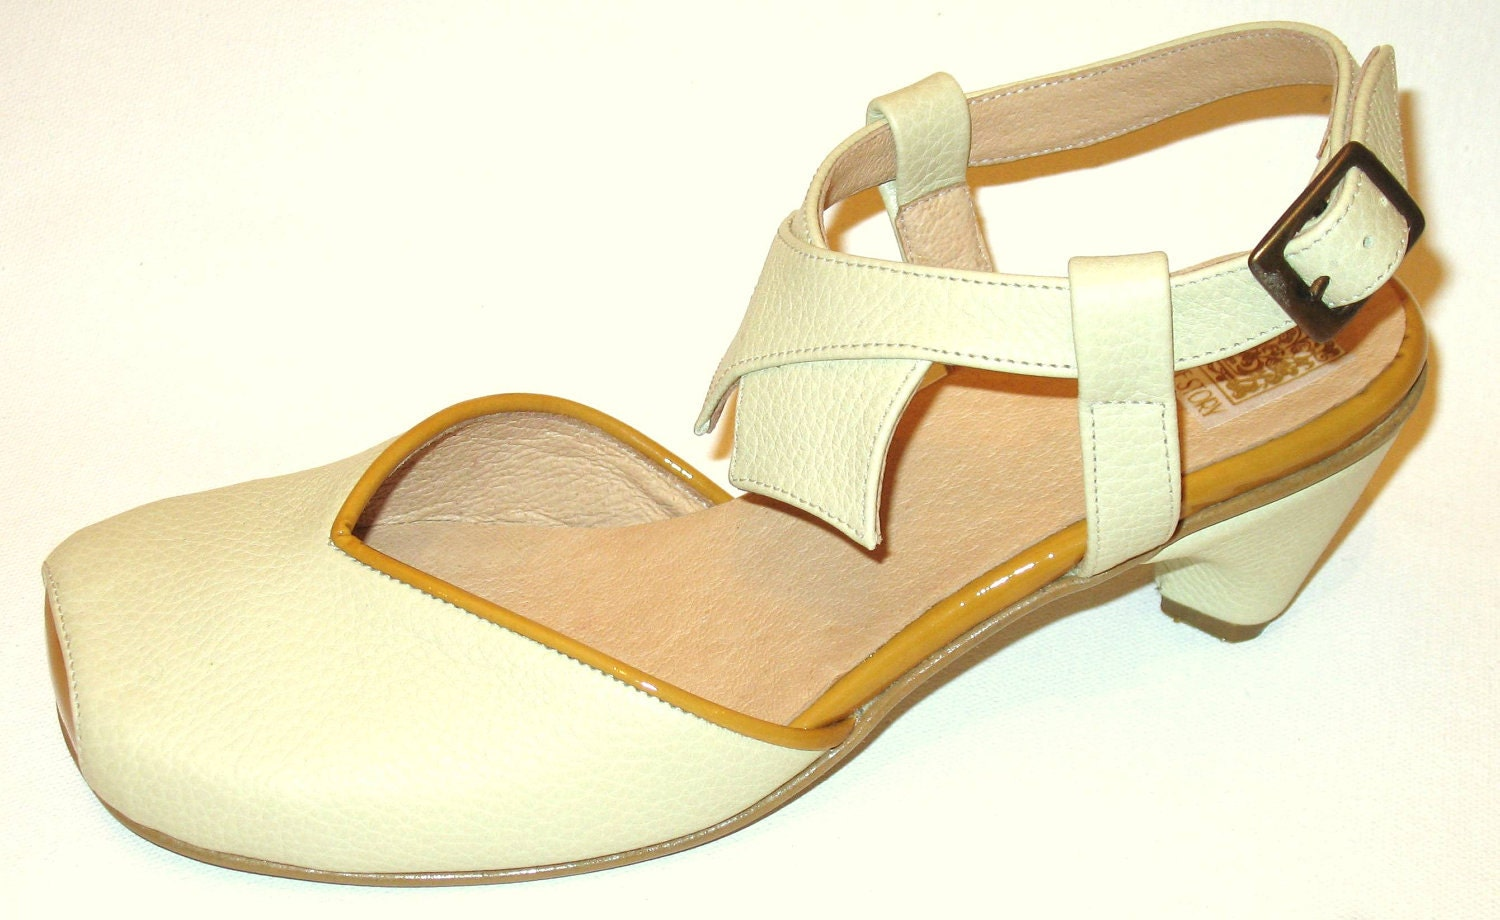 Sophie White shoes